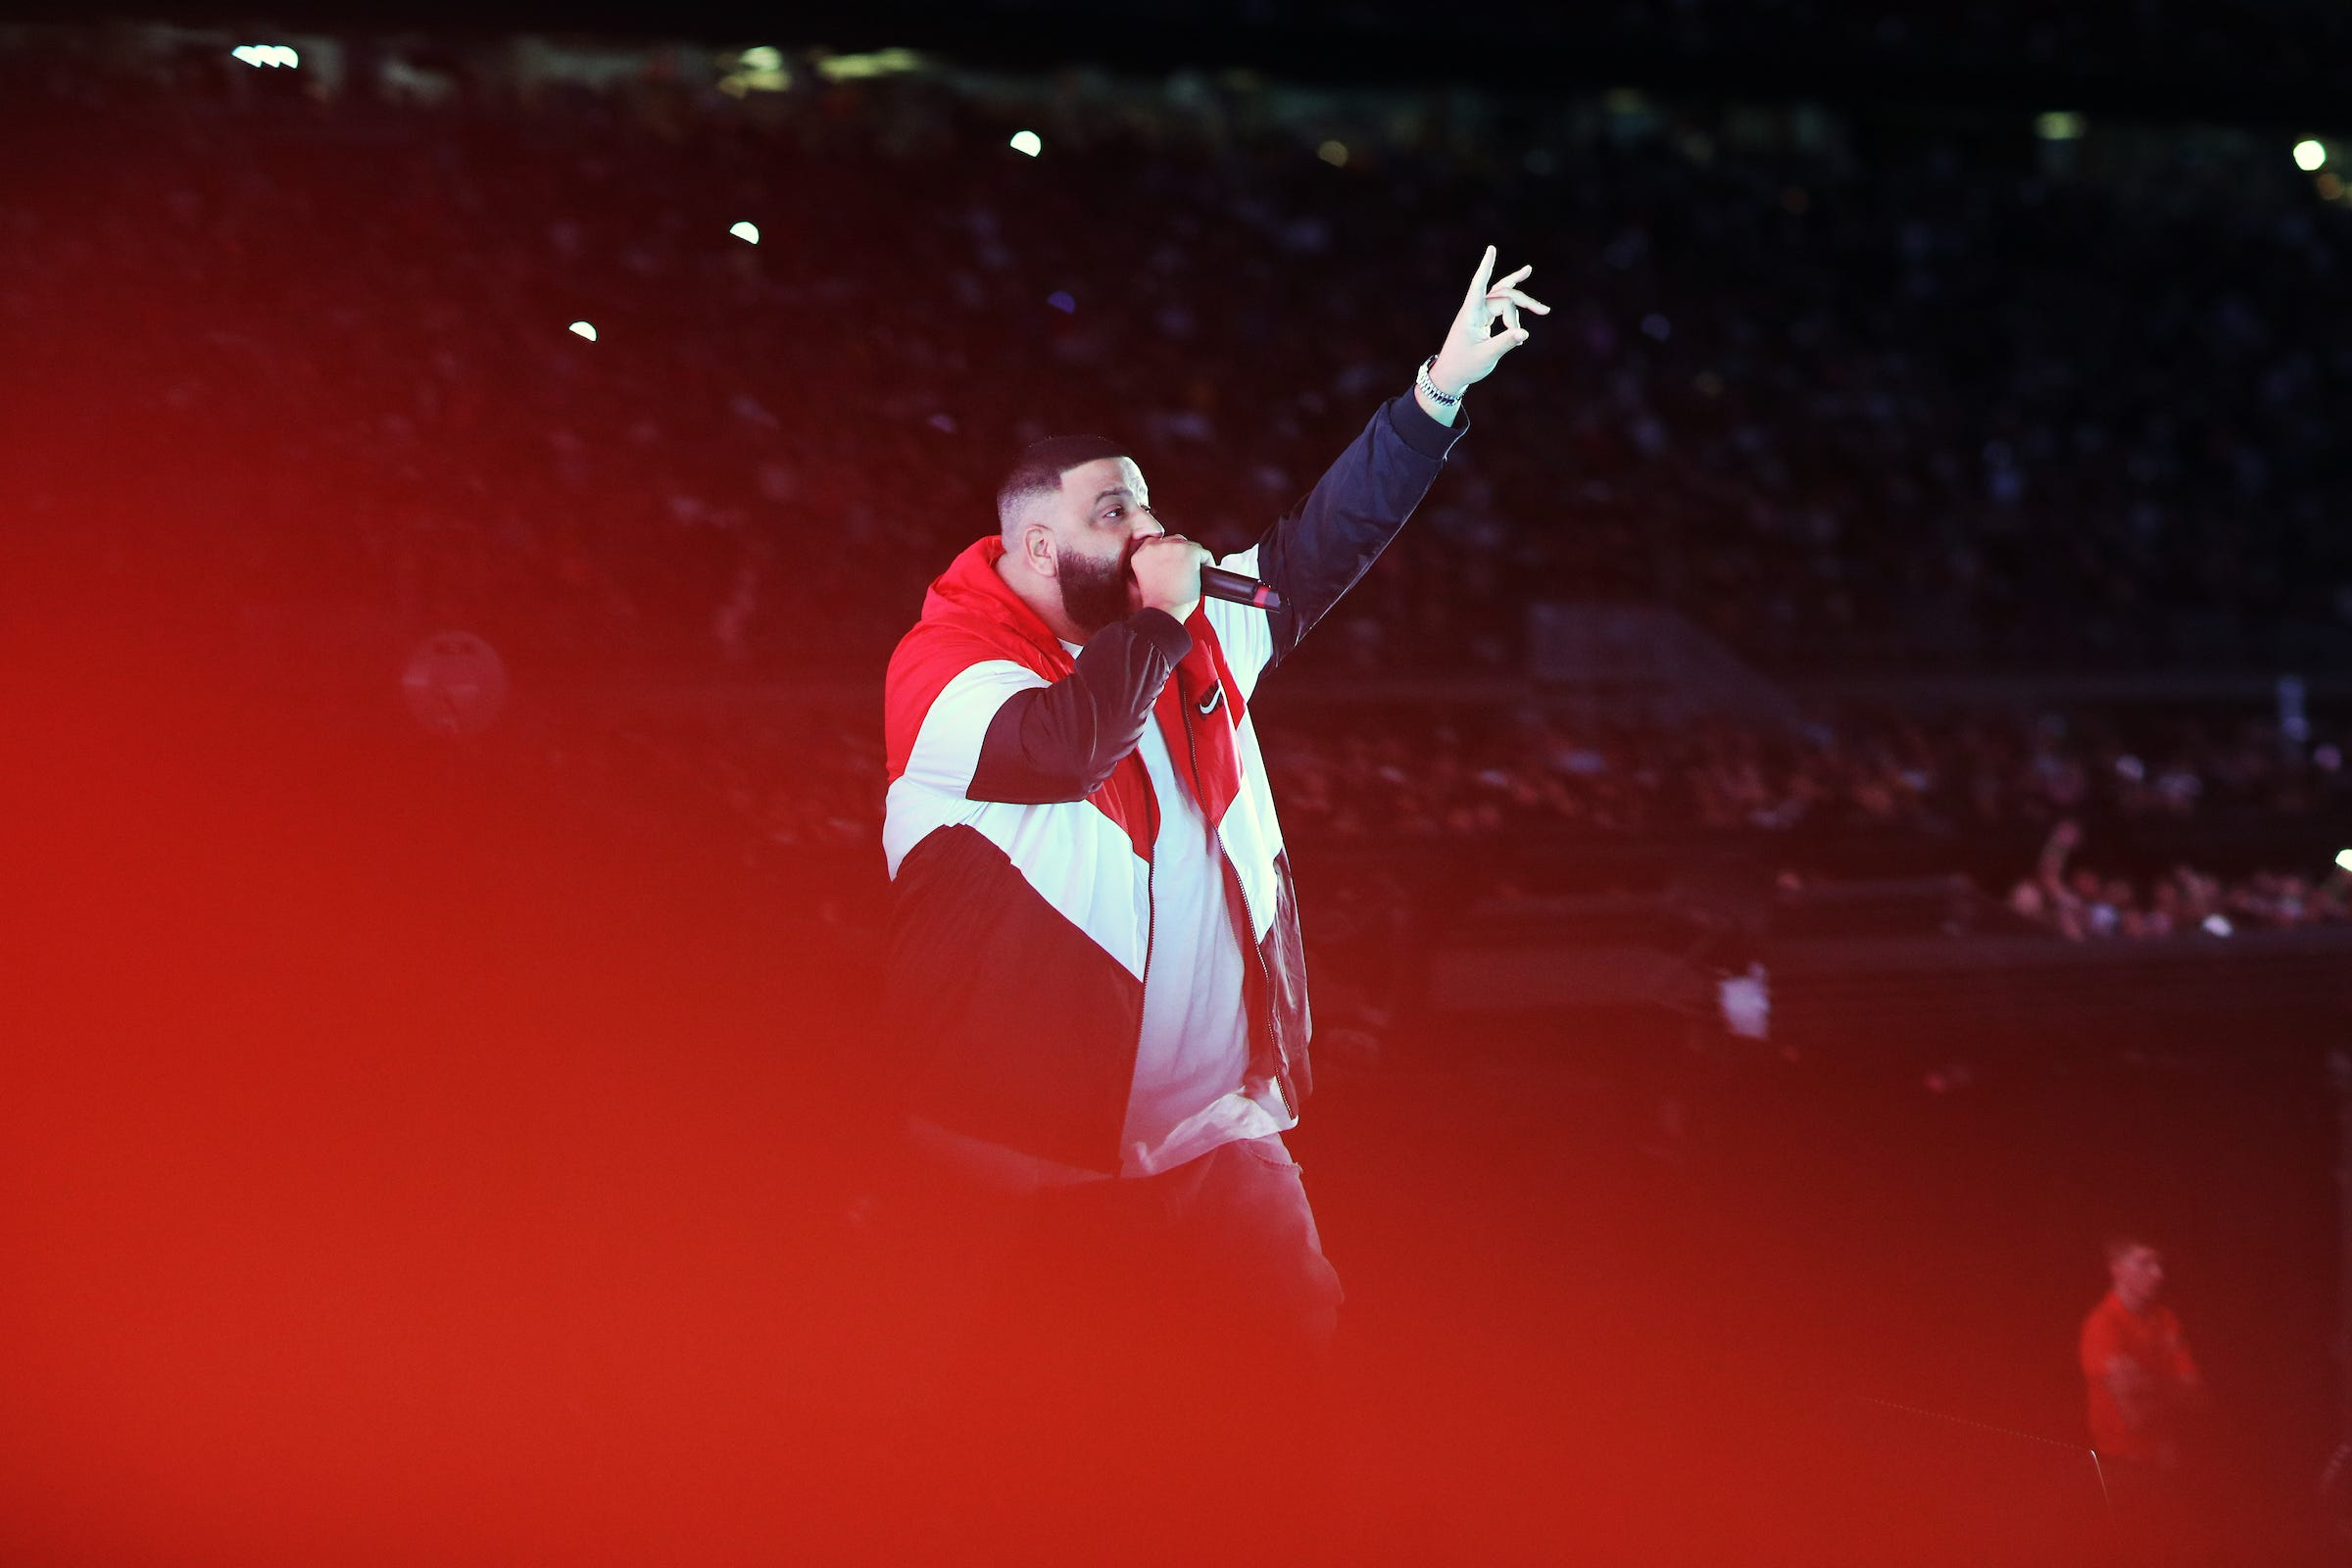 DJ Khaled performs during the 'On The Run II' tour at the University of Phoenix Stadium on Sept. 19, 2018 in Phoenix, Arizona.